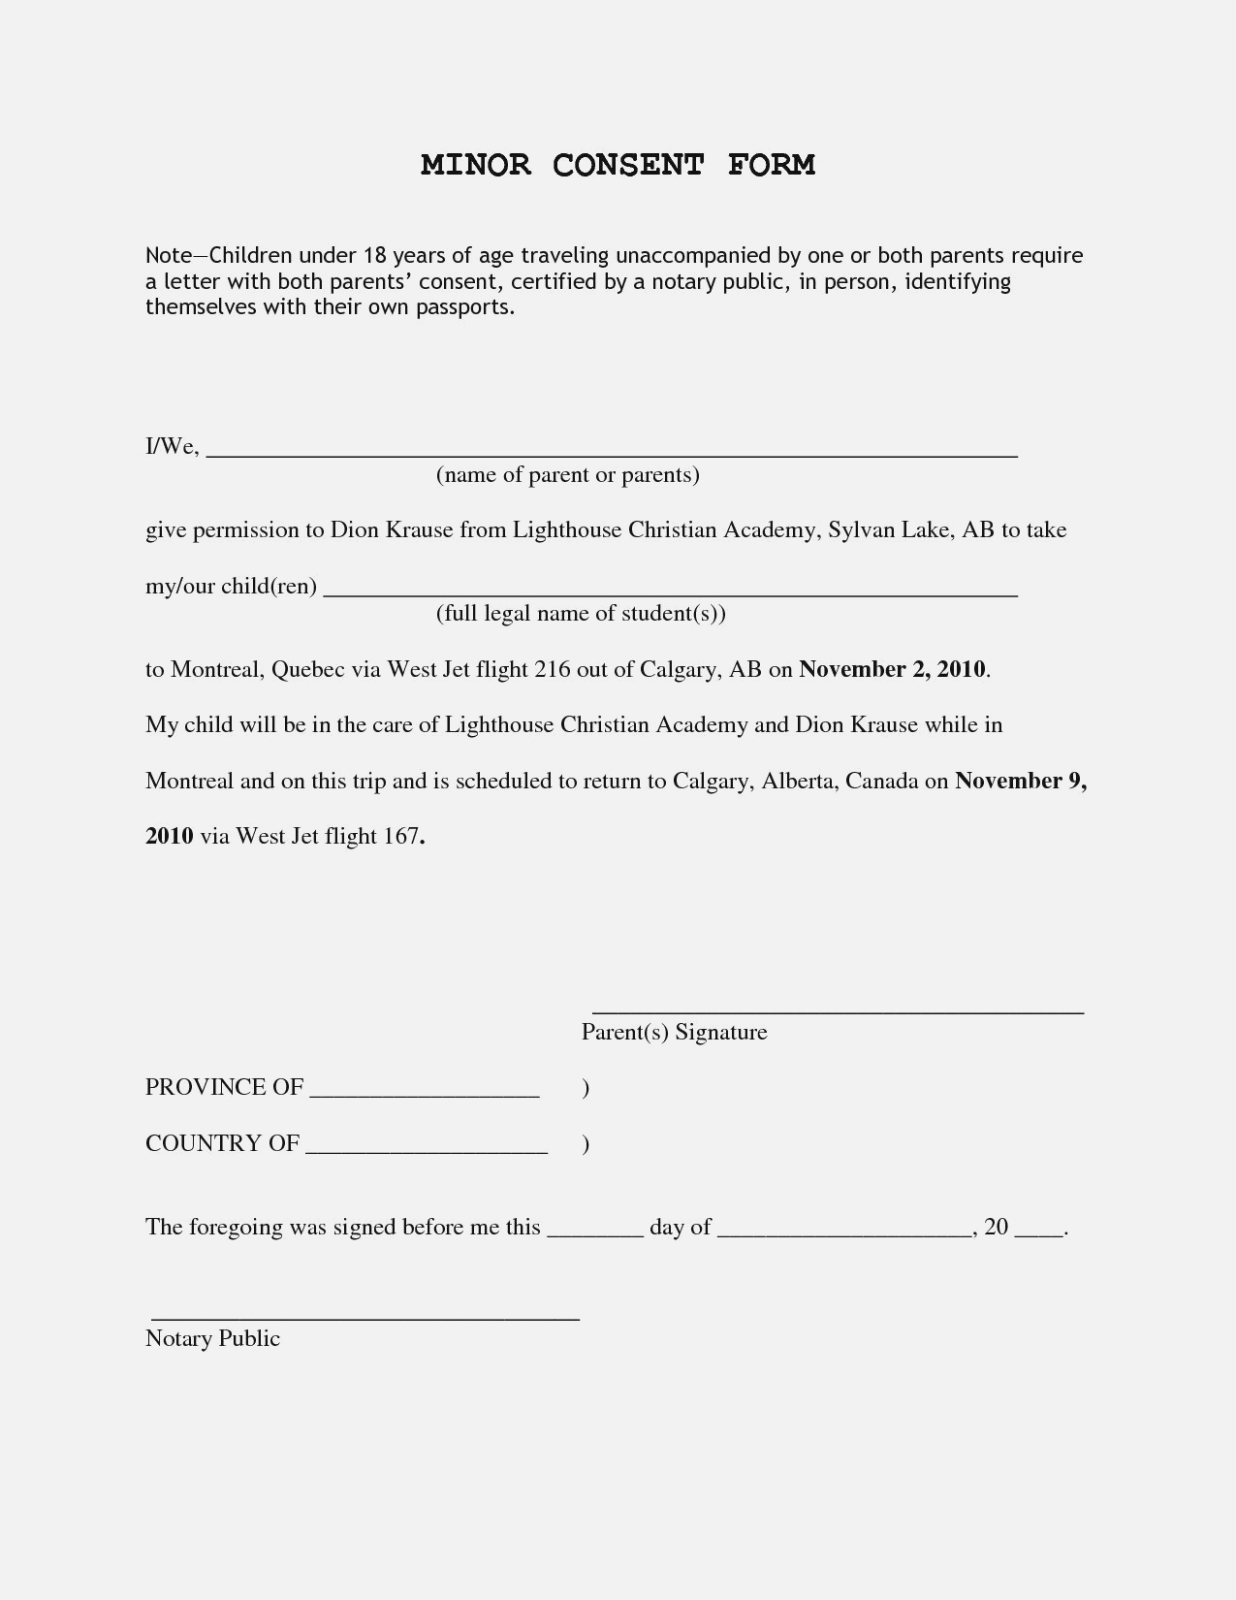 Child Travel Consent Form With One Parent Free